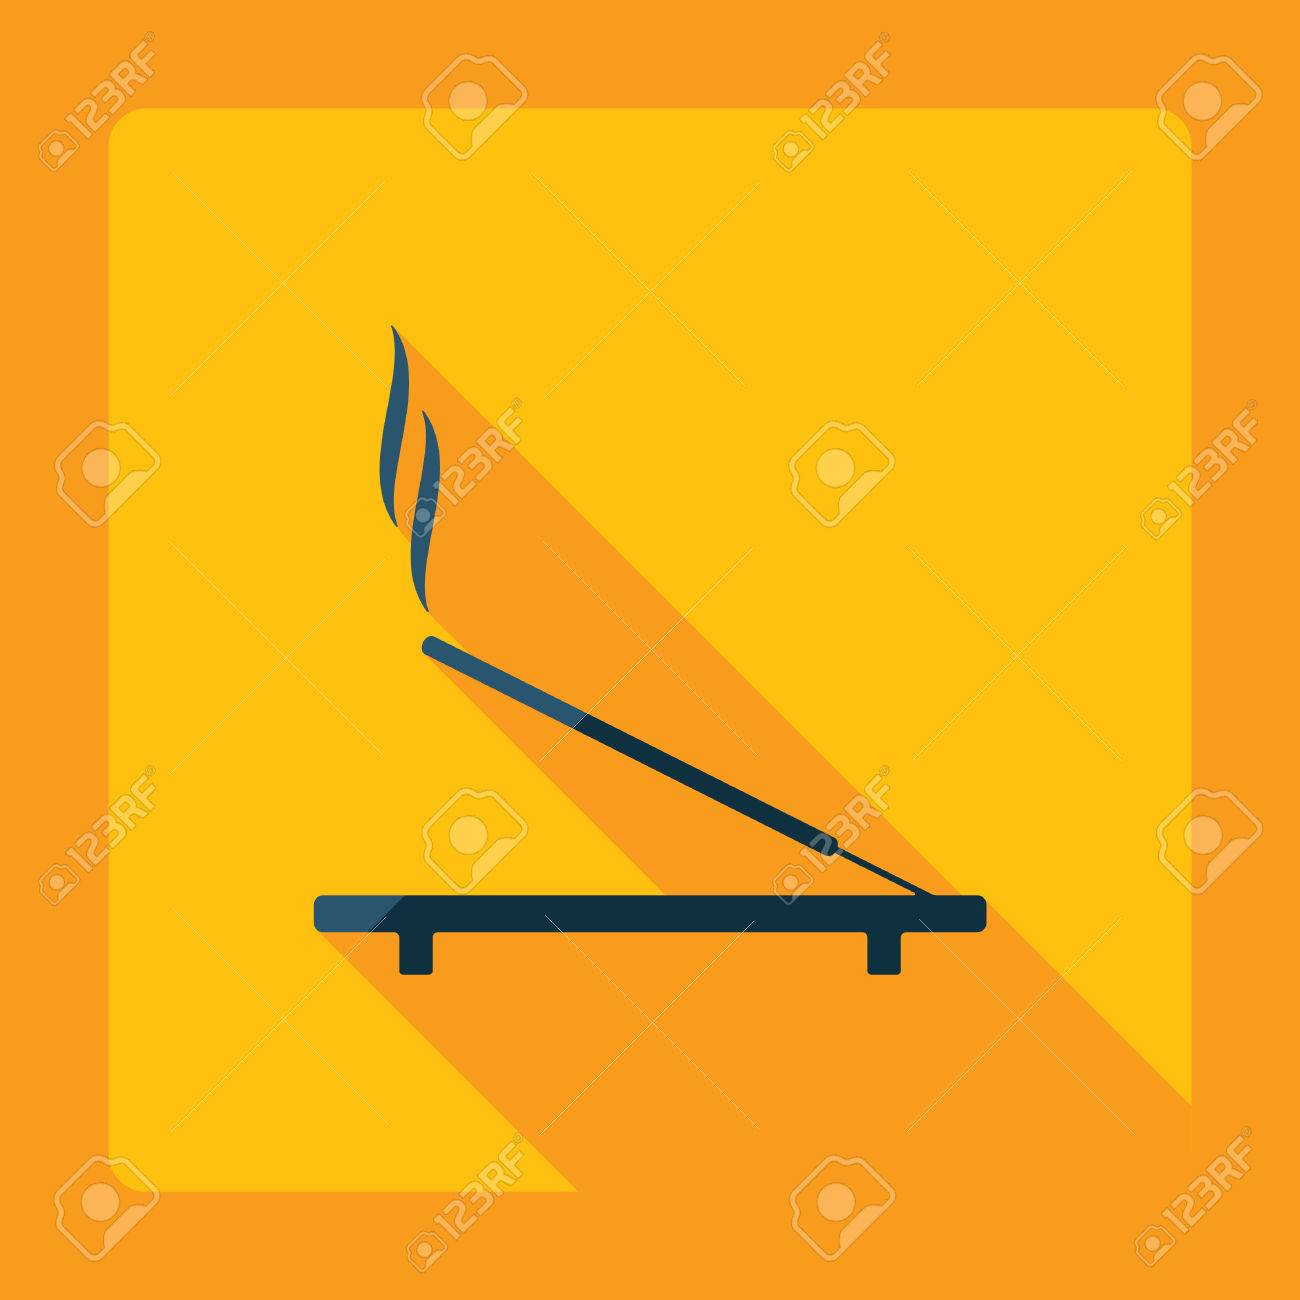 Flat Modern Design With Shadow Incense Sticks Royalty Free Cliparts Vectors And Stock Illustration Image 53022792